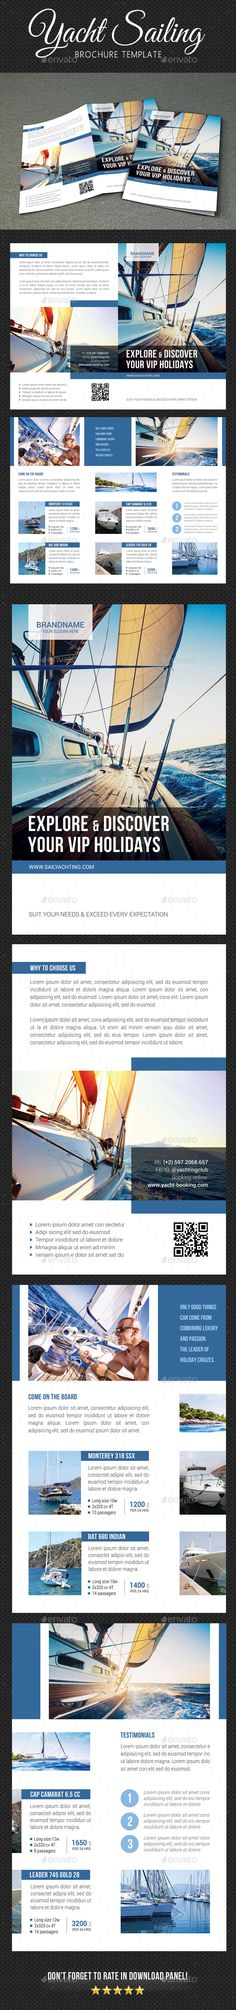 Yachting Brochure 2 - Corporate Brochures